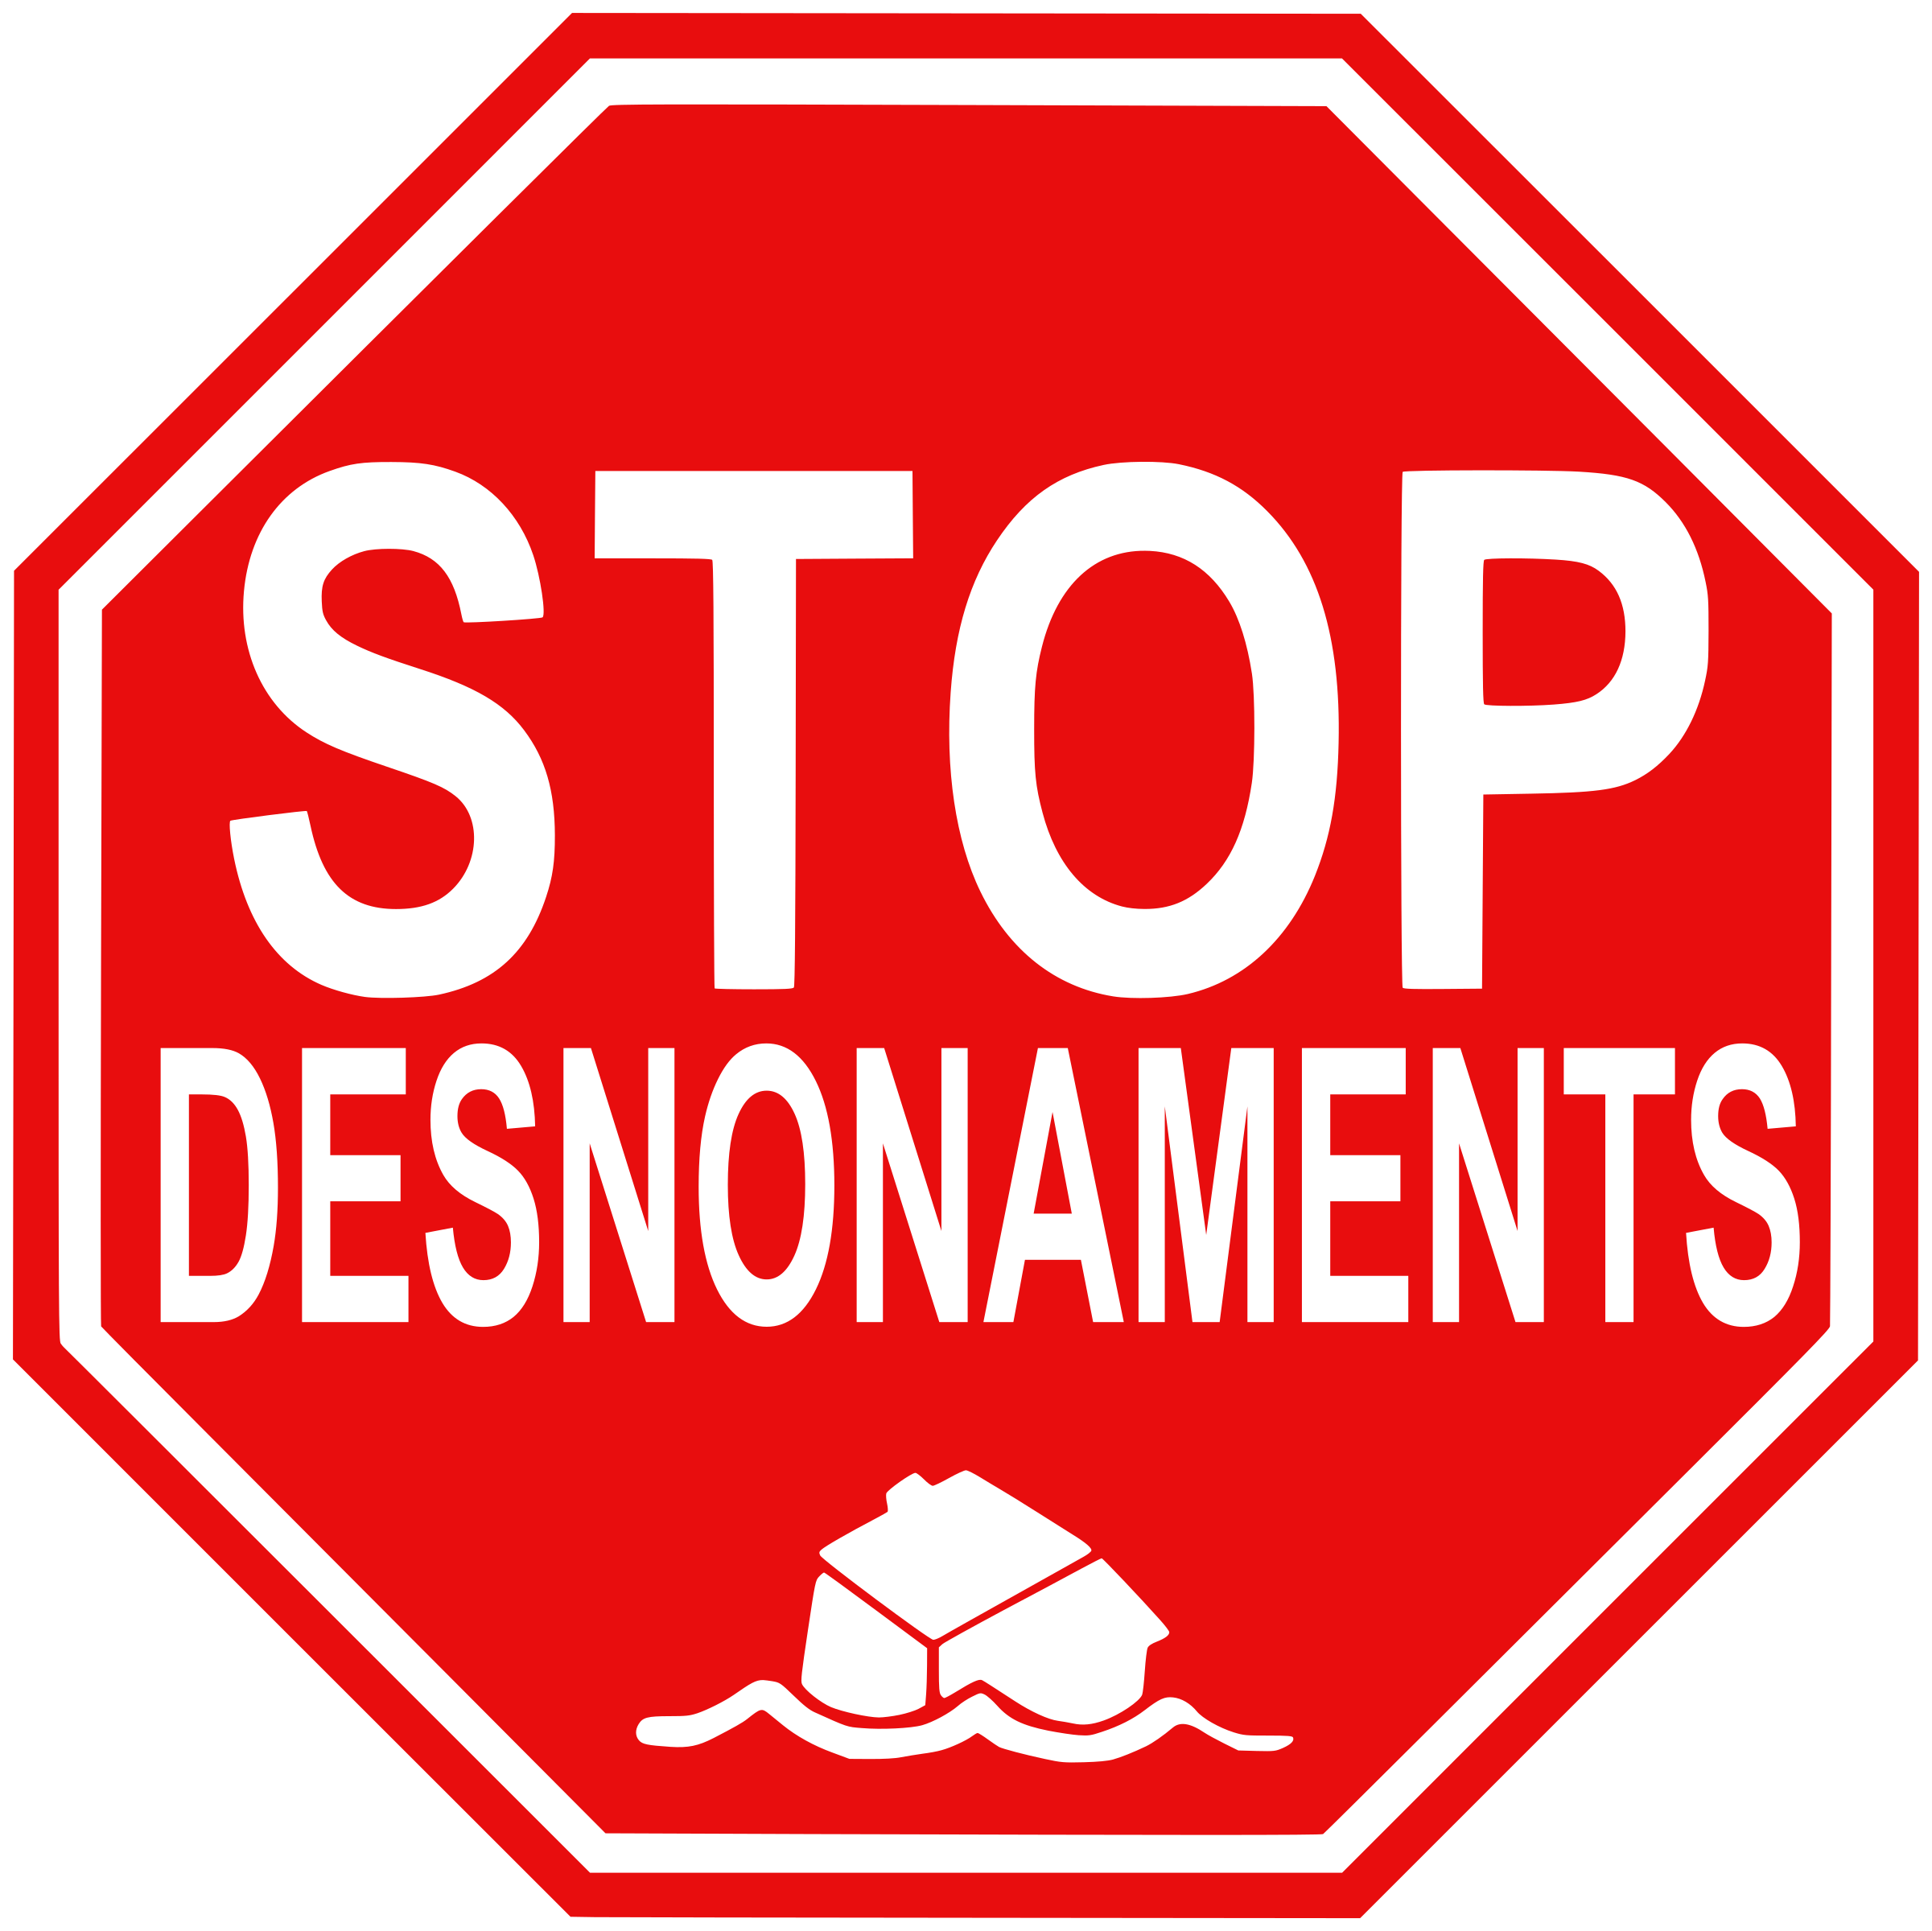 stop desnonaments by fofo